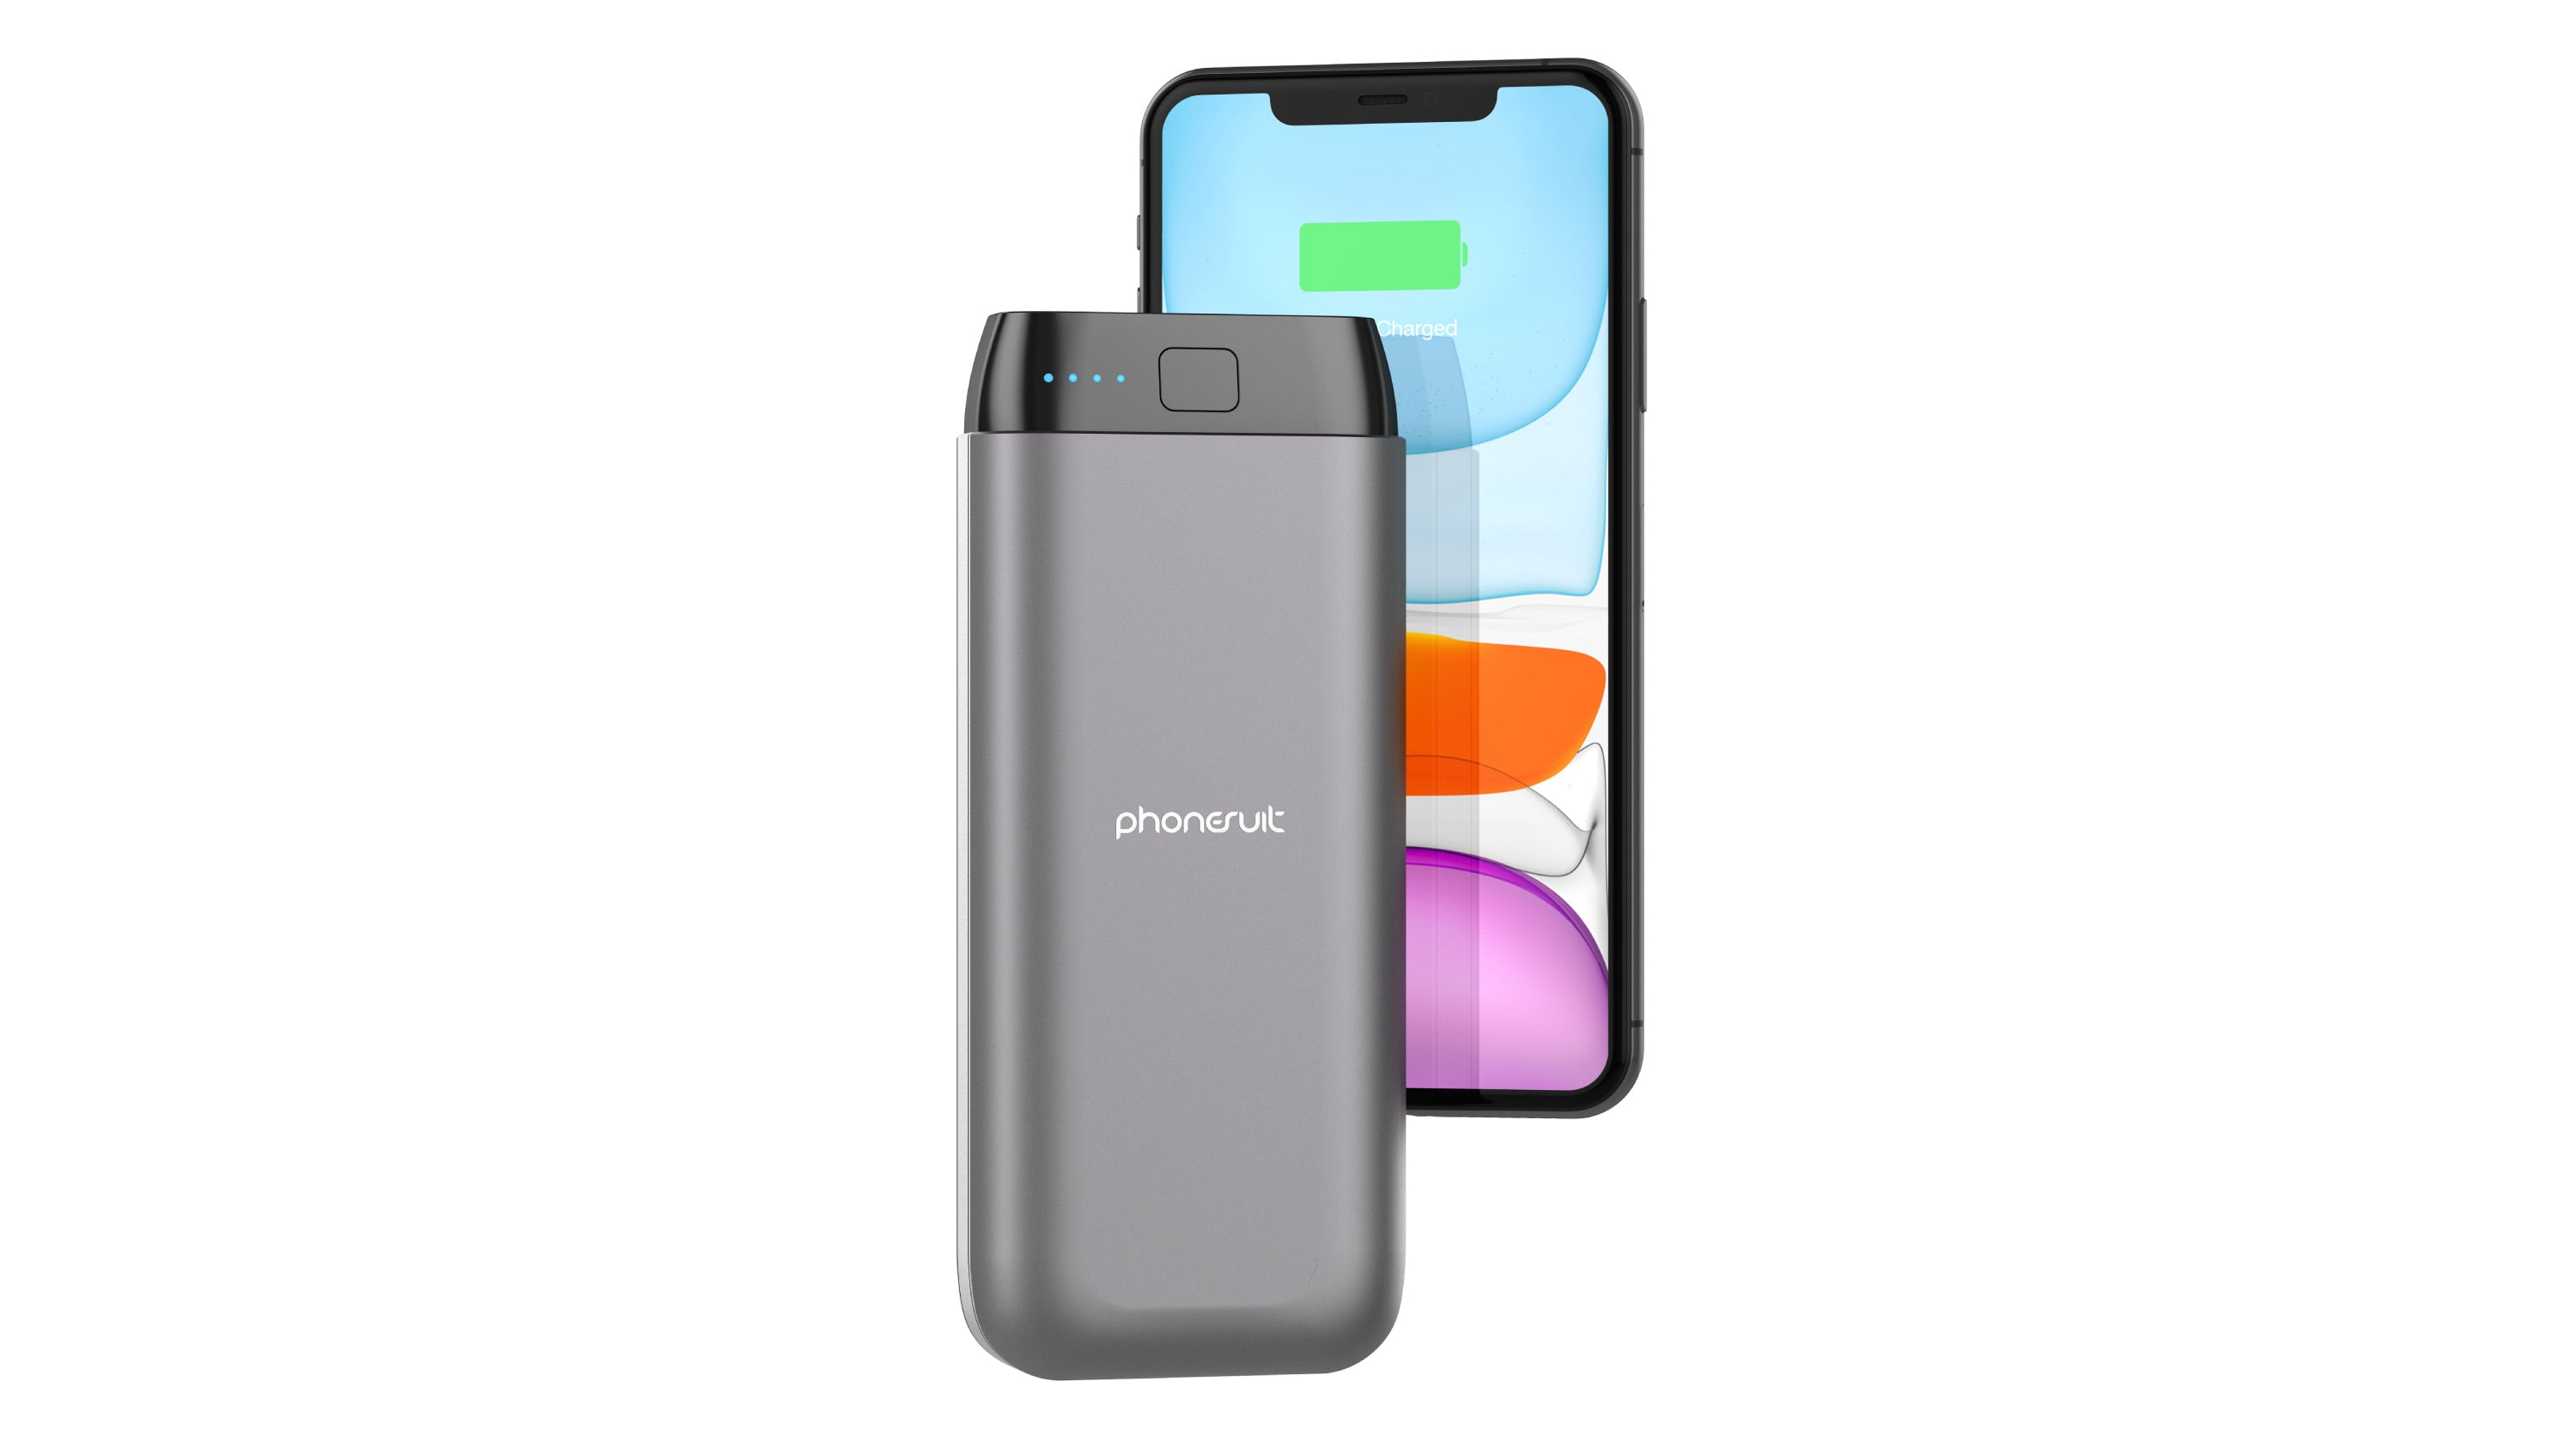 PhoneSuit Power Bank 20,000mAh for iPhone, Samsung